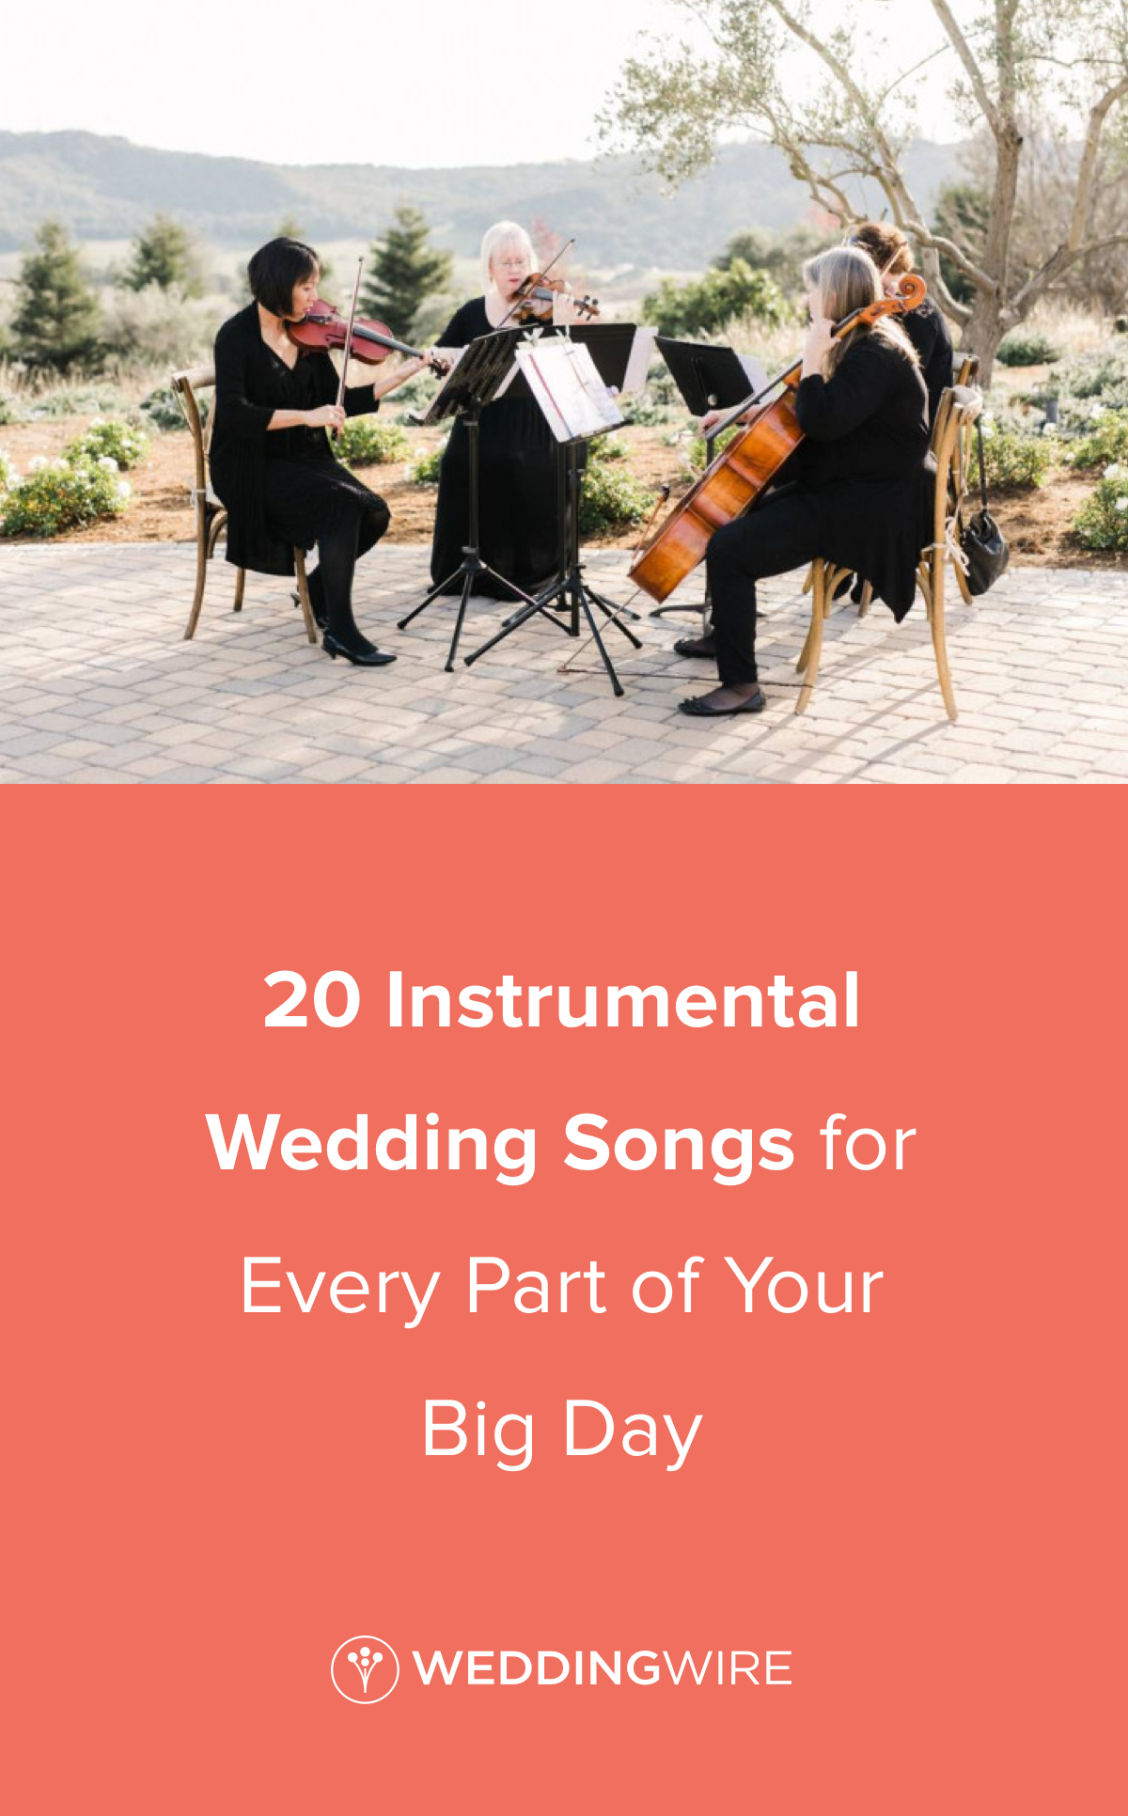 21 Instrumental Wedding Songs For Every Part Of Your Big Day Instrumental Wedding Songs Processional Wedding Songs Wedding Songs